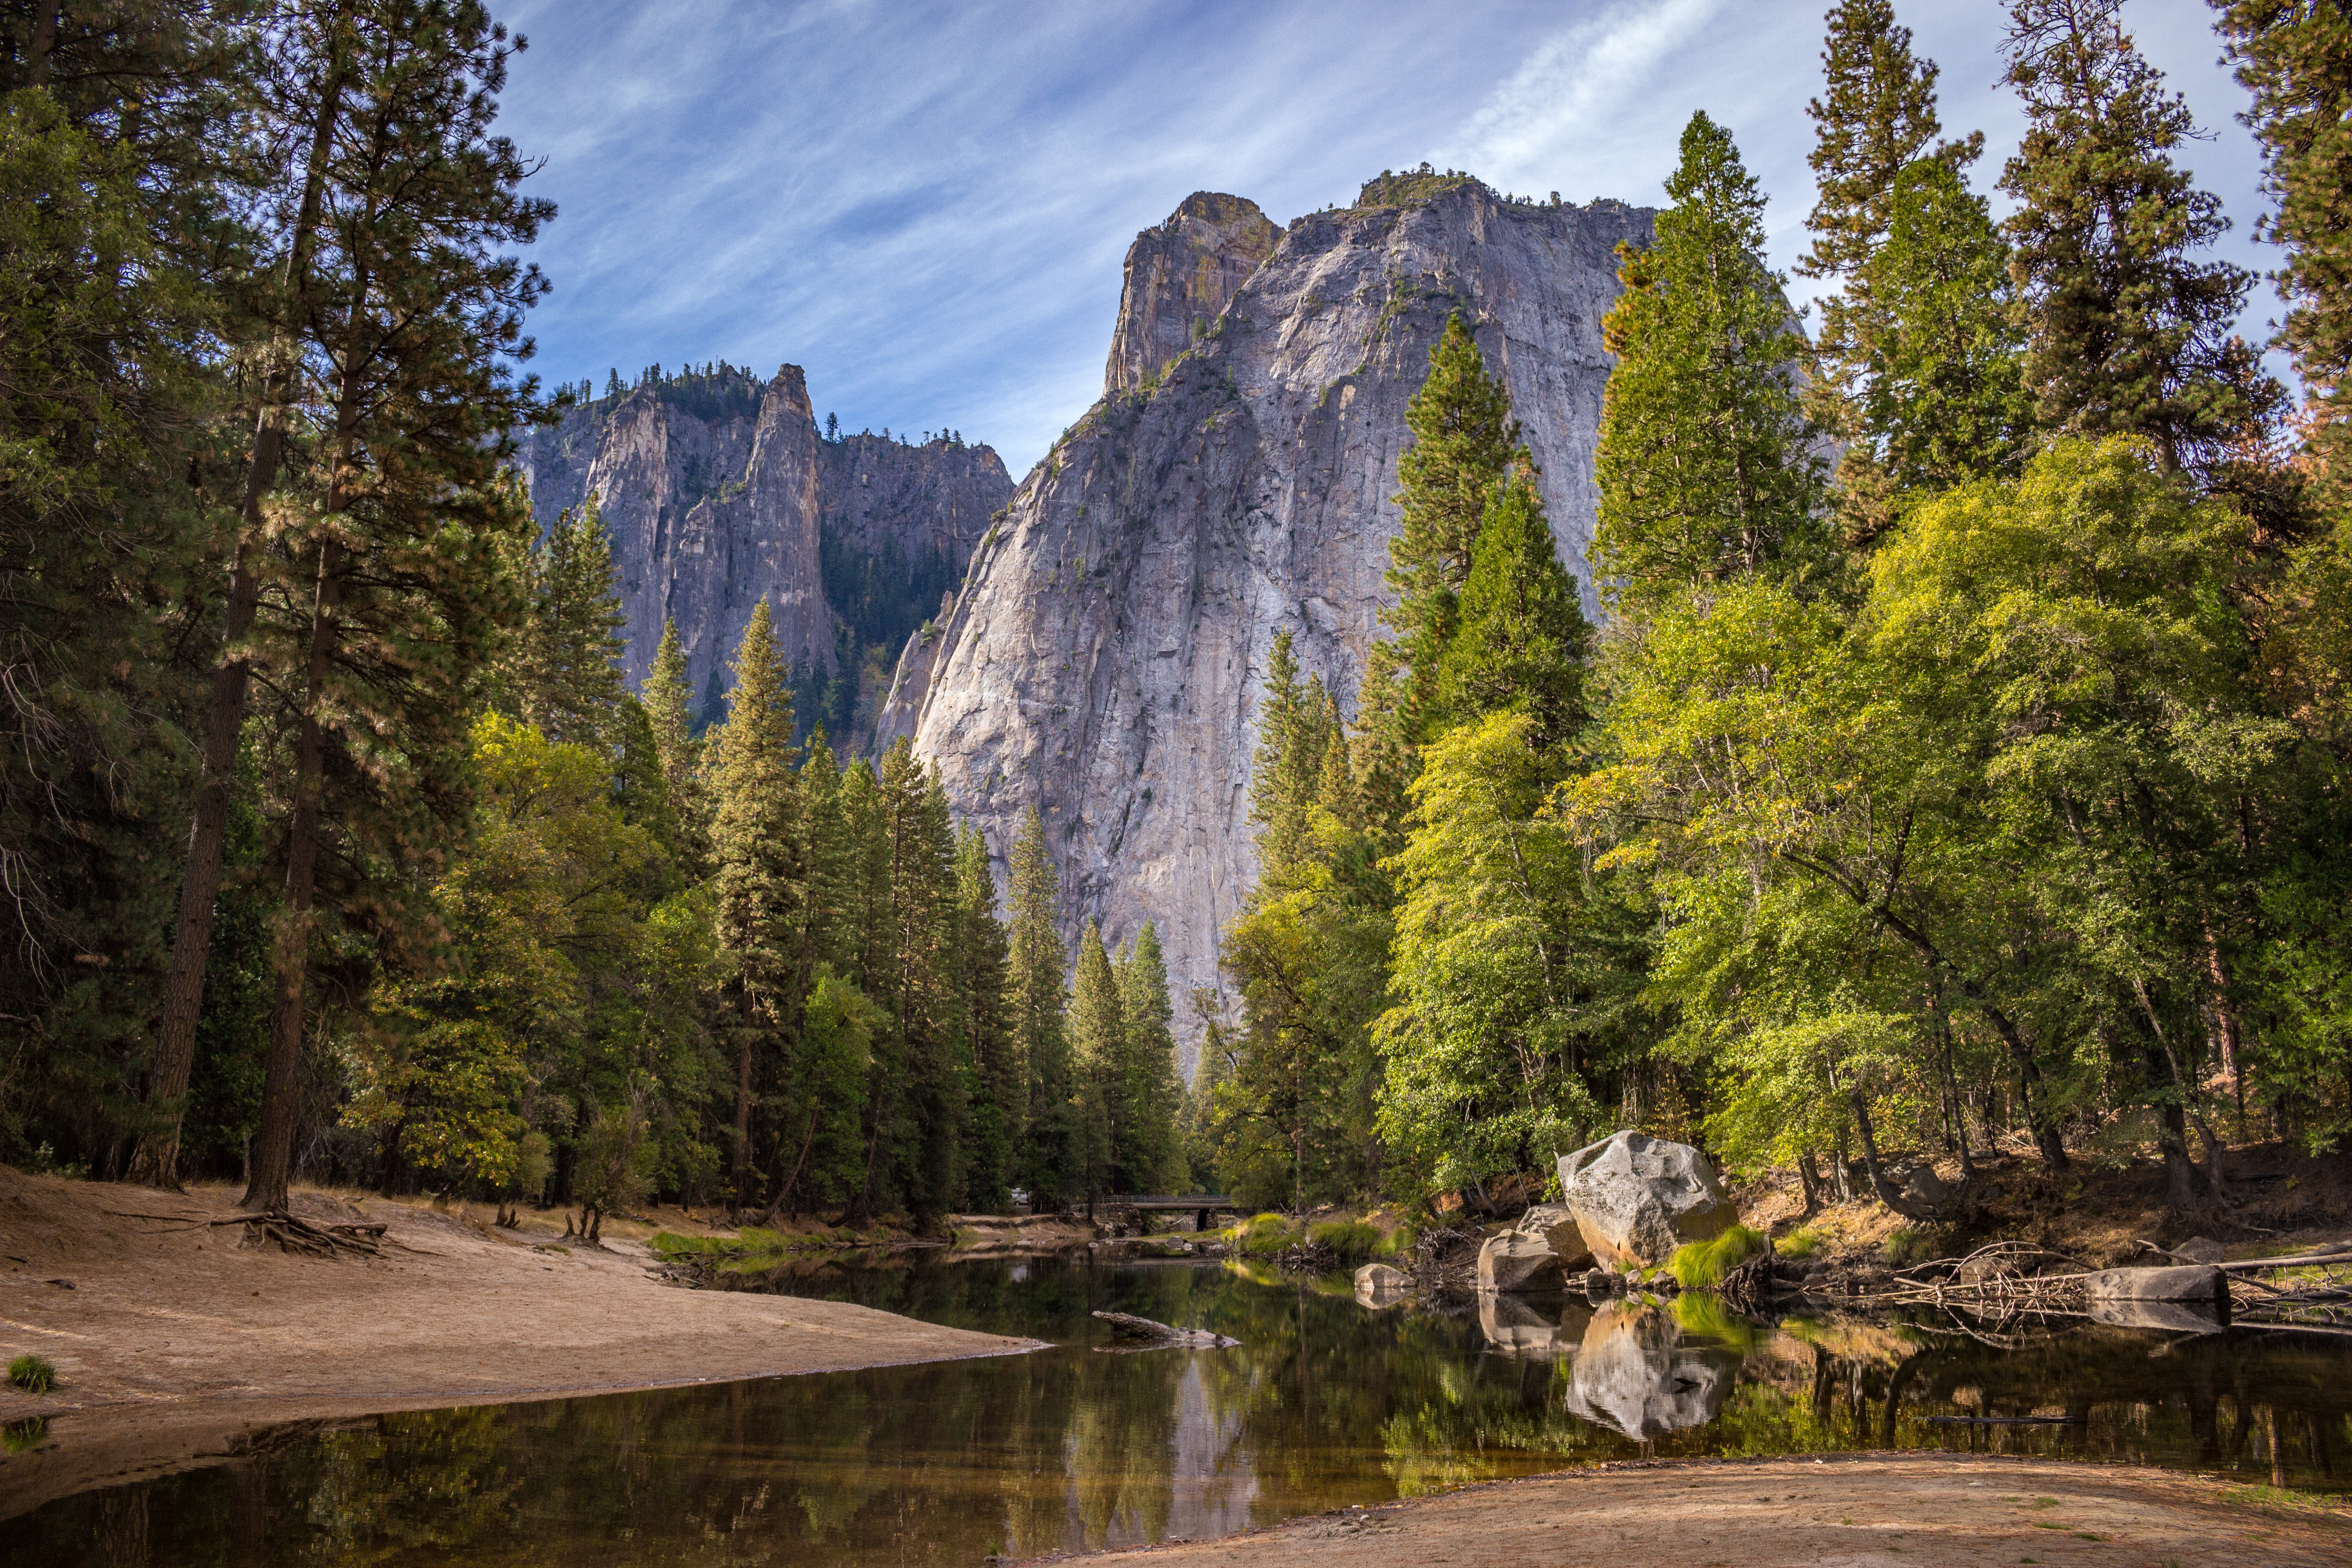 Tall cliffs in Yosemite National Park towering above a small river